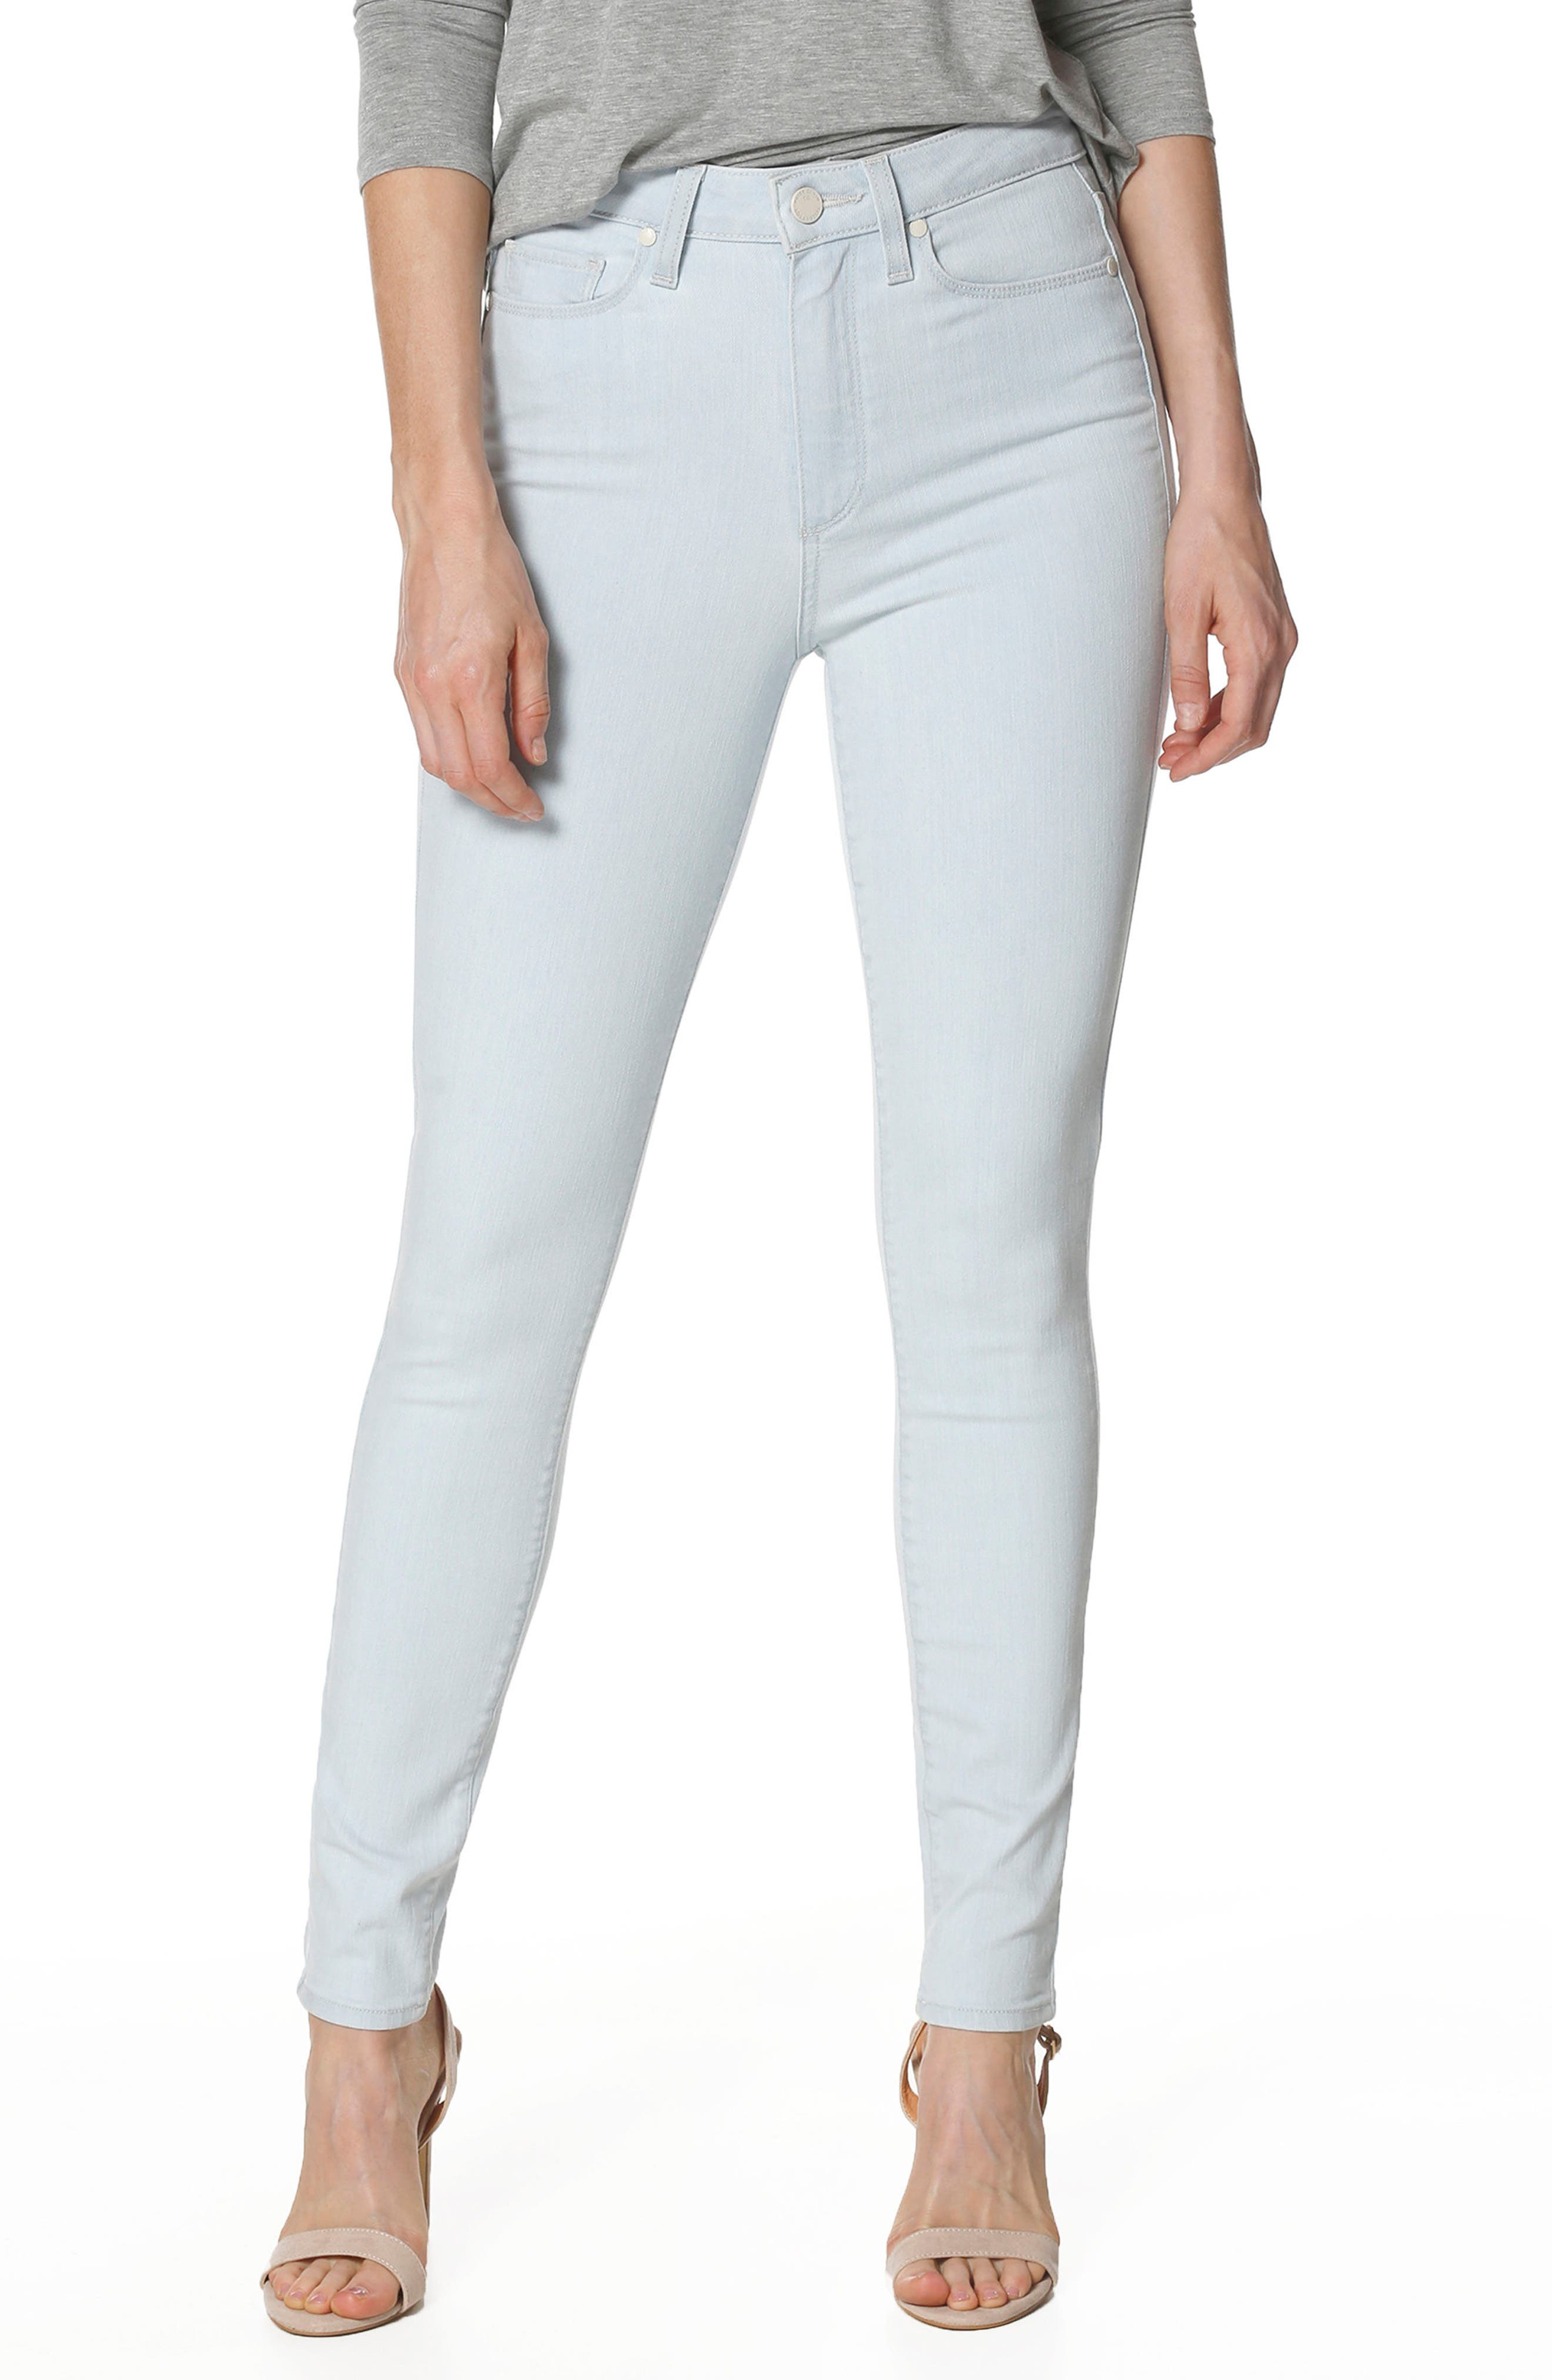 Margot High Waist Ultra Skinny Jeans,                         Main,                         color, Kelso